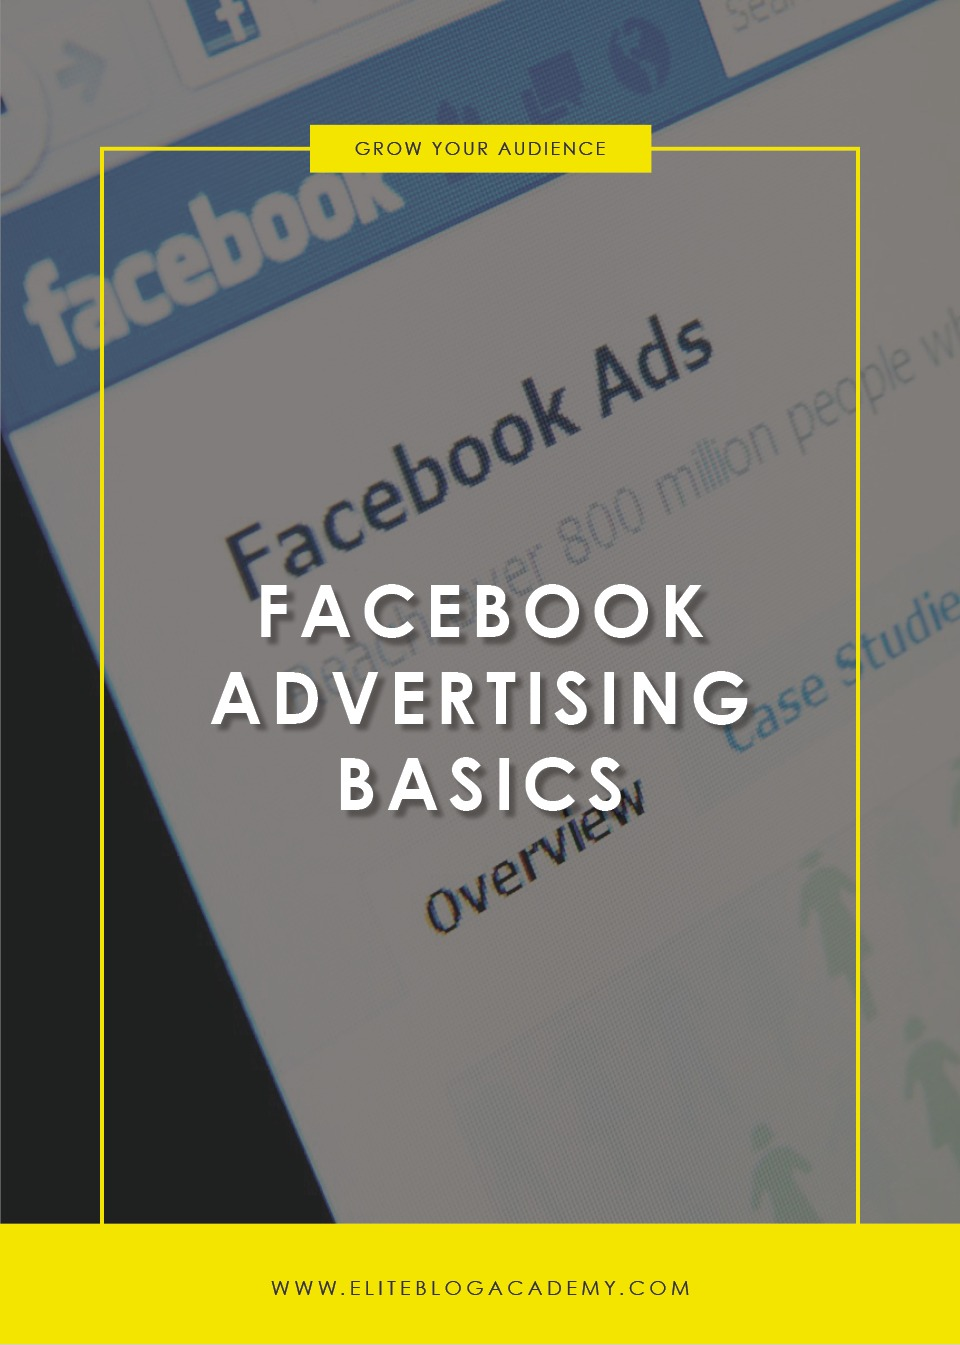 Facebook Advertising Basics | Social Media | Blogging Tools |  | How to Make Money Blogging | Brand New Blogger | Blogging Tips | EBA | Elite Blog Academy | How to Blog | Blogging 101